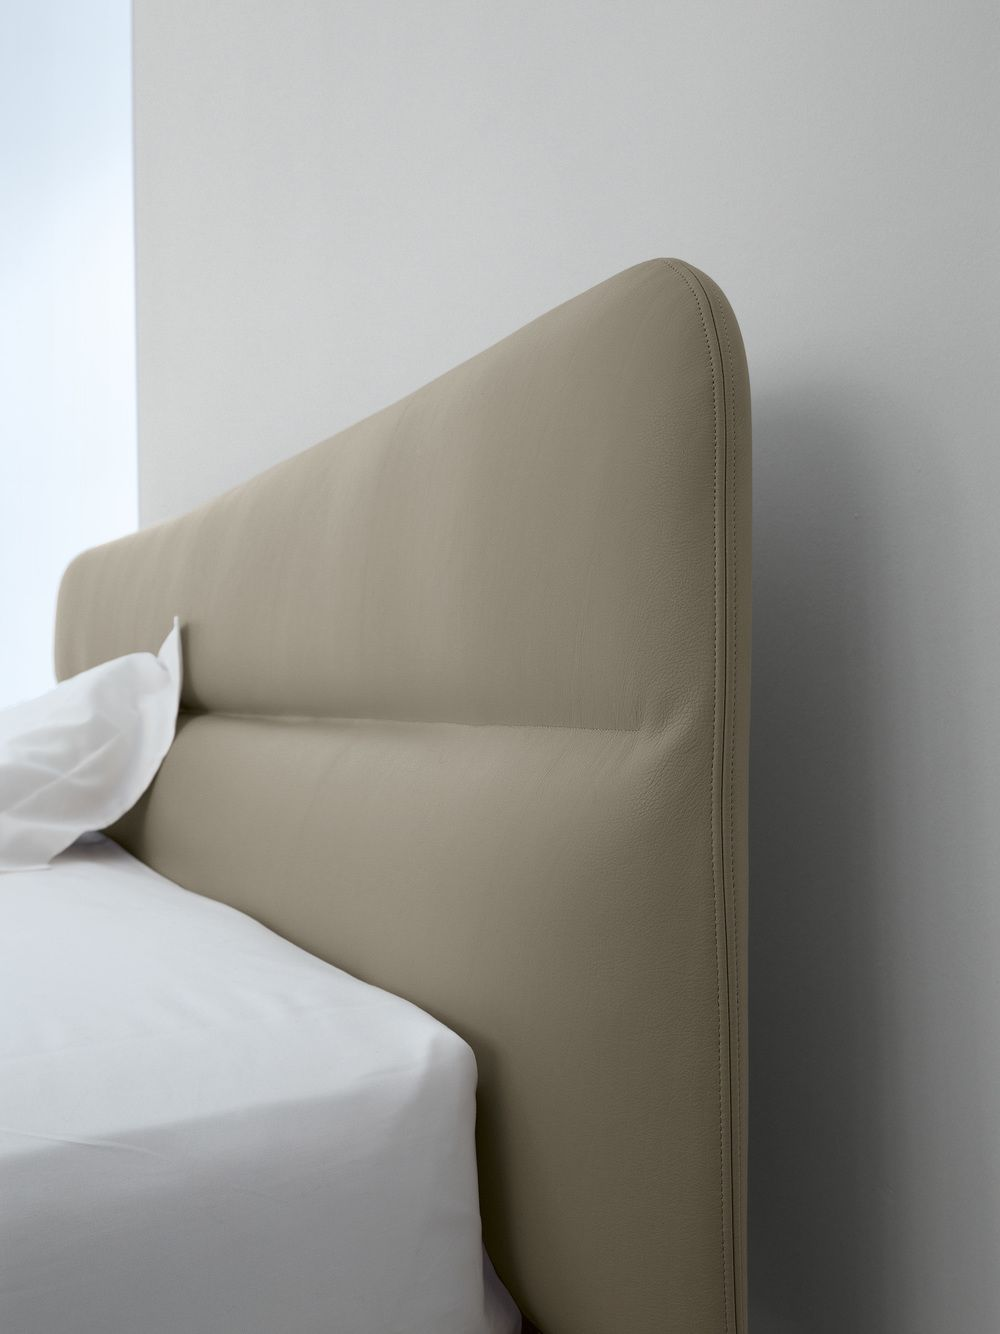 AMOS BED Materials: Polyurethane Foam, Padded Wooden Headboard. Beechwood  Slats, Removable Cover